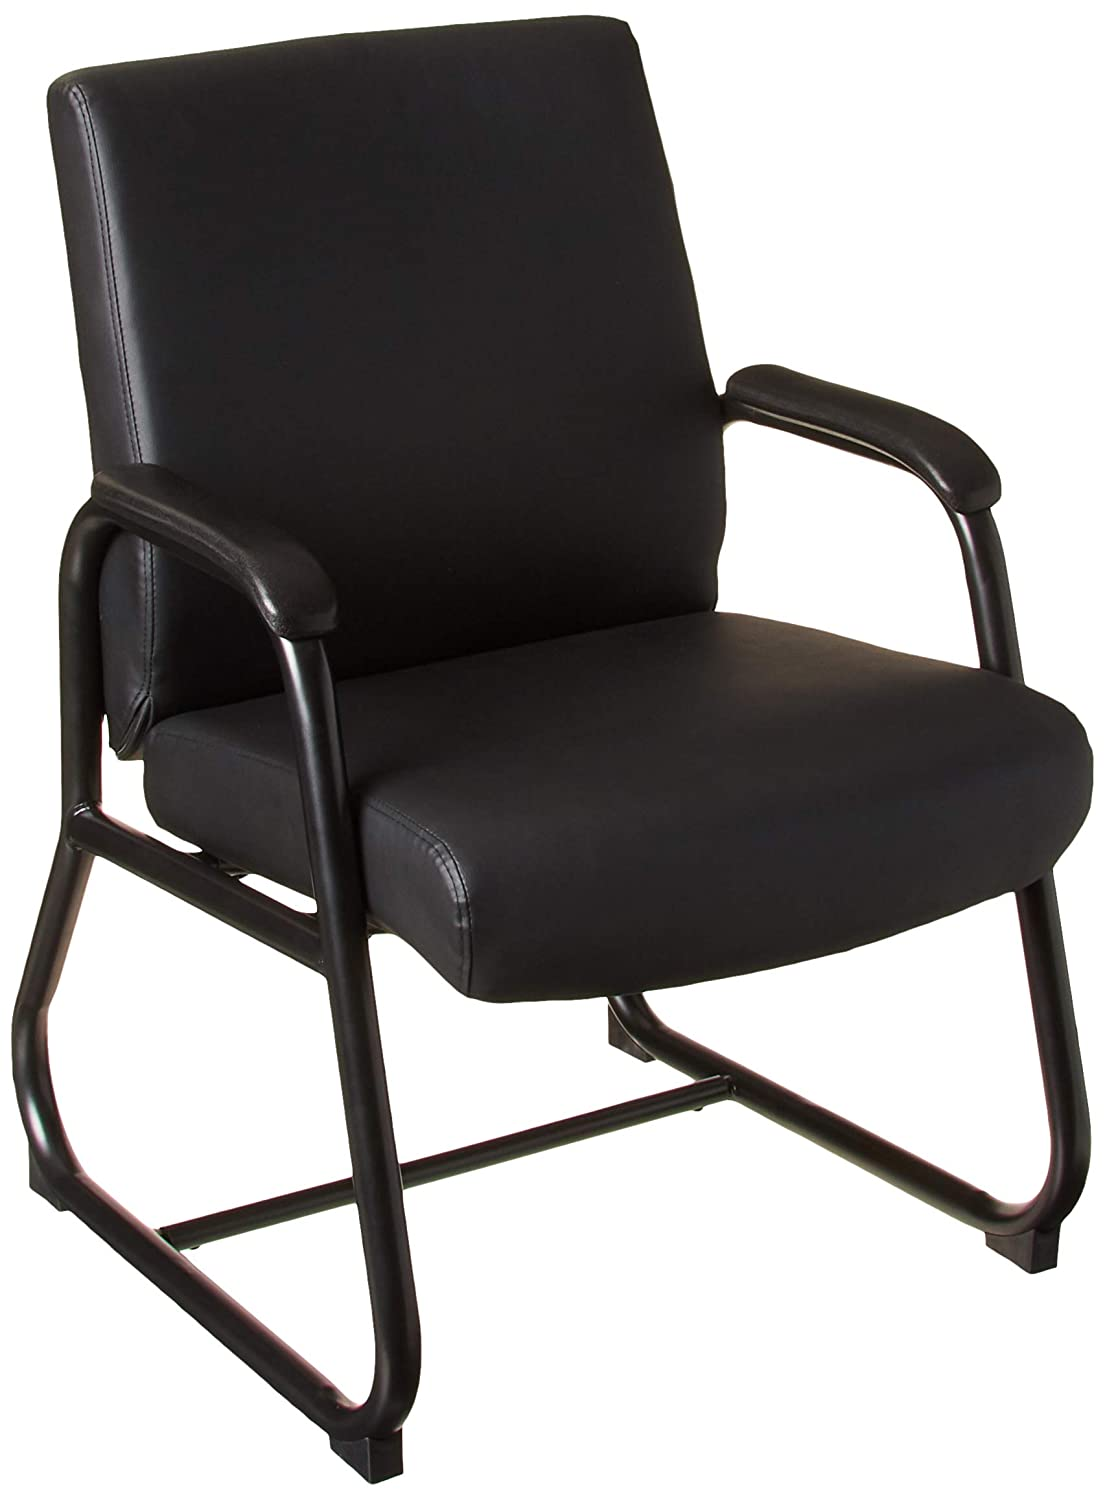 B002FB6Z7O Boss Office Products Heavy Duty Caressoft Guest Chair in Black 71YVo3PM98L._SL1500_